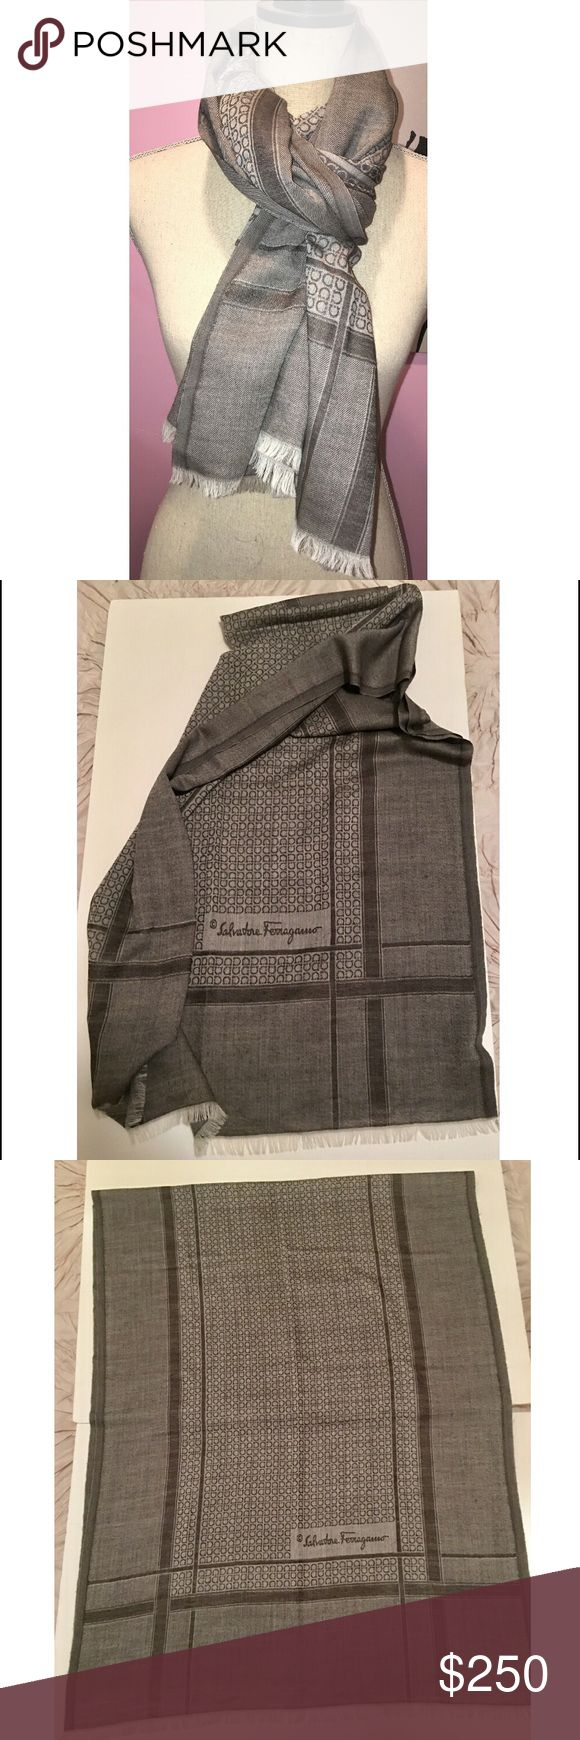 Salvatore Ferragamo Gancini Scarf Shawl Logo Large Authentic New w/o tags. Made in Italy. Made of wool/cashmere blend large scarf shawl. Made in Italy. Can be used for man or woman. The Gancini pattern print logo. Scarf reversible. Fringe at both ends. Color is taupe and brown. Makes a perfect holiday gift for yourself or someone you love. Picture #3 the scarf is still folded in half. It's large and lightweight. Truly perfect! Salvatore Ferragamo Accessories Scarves